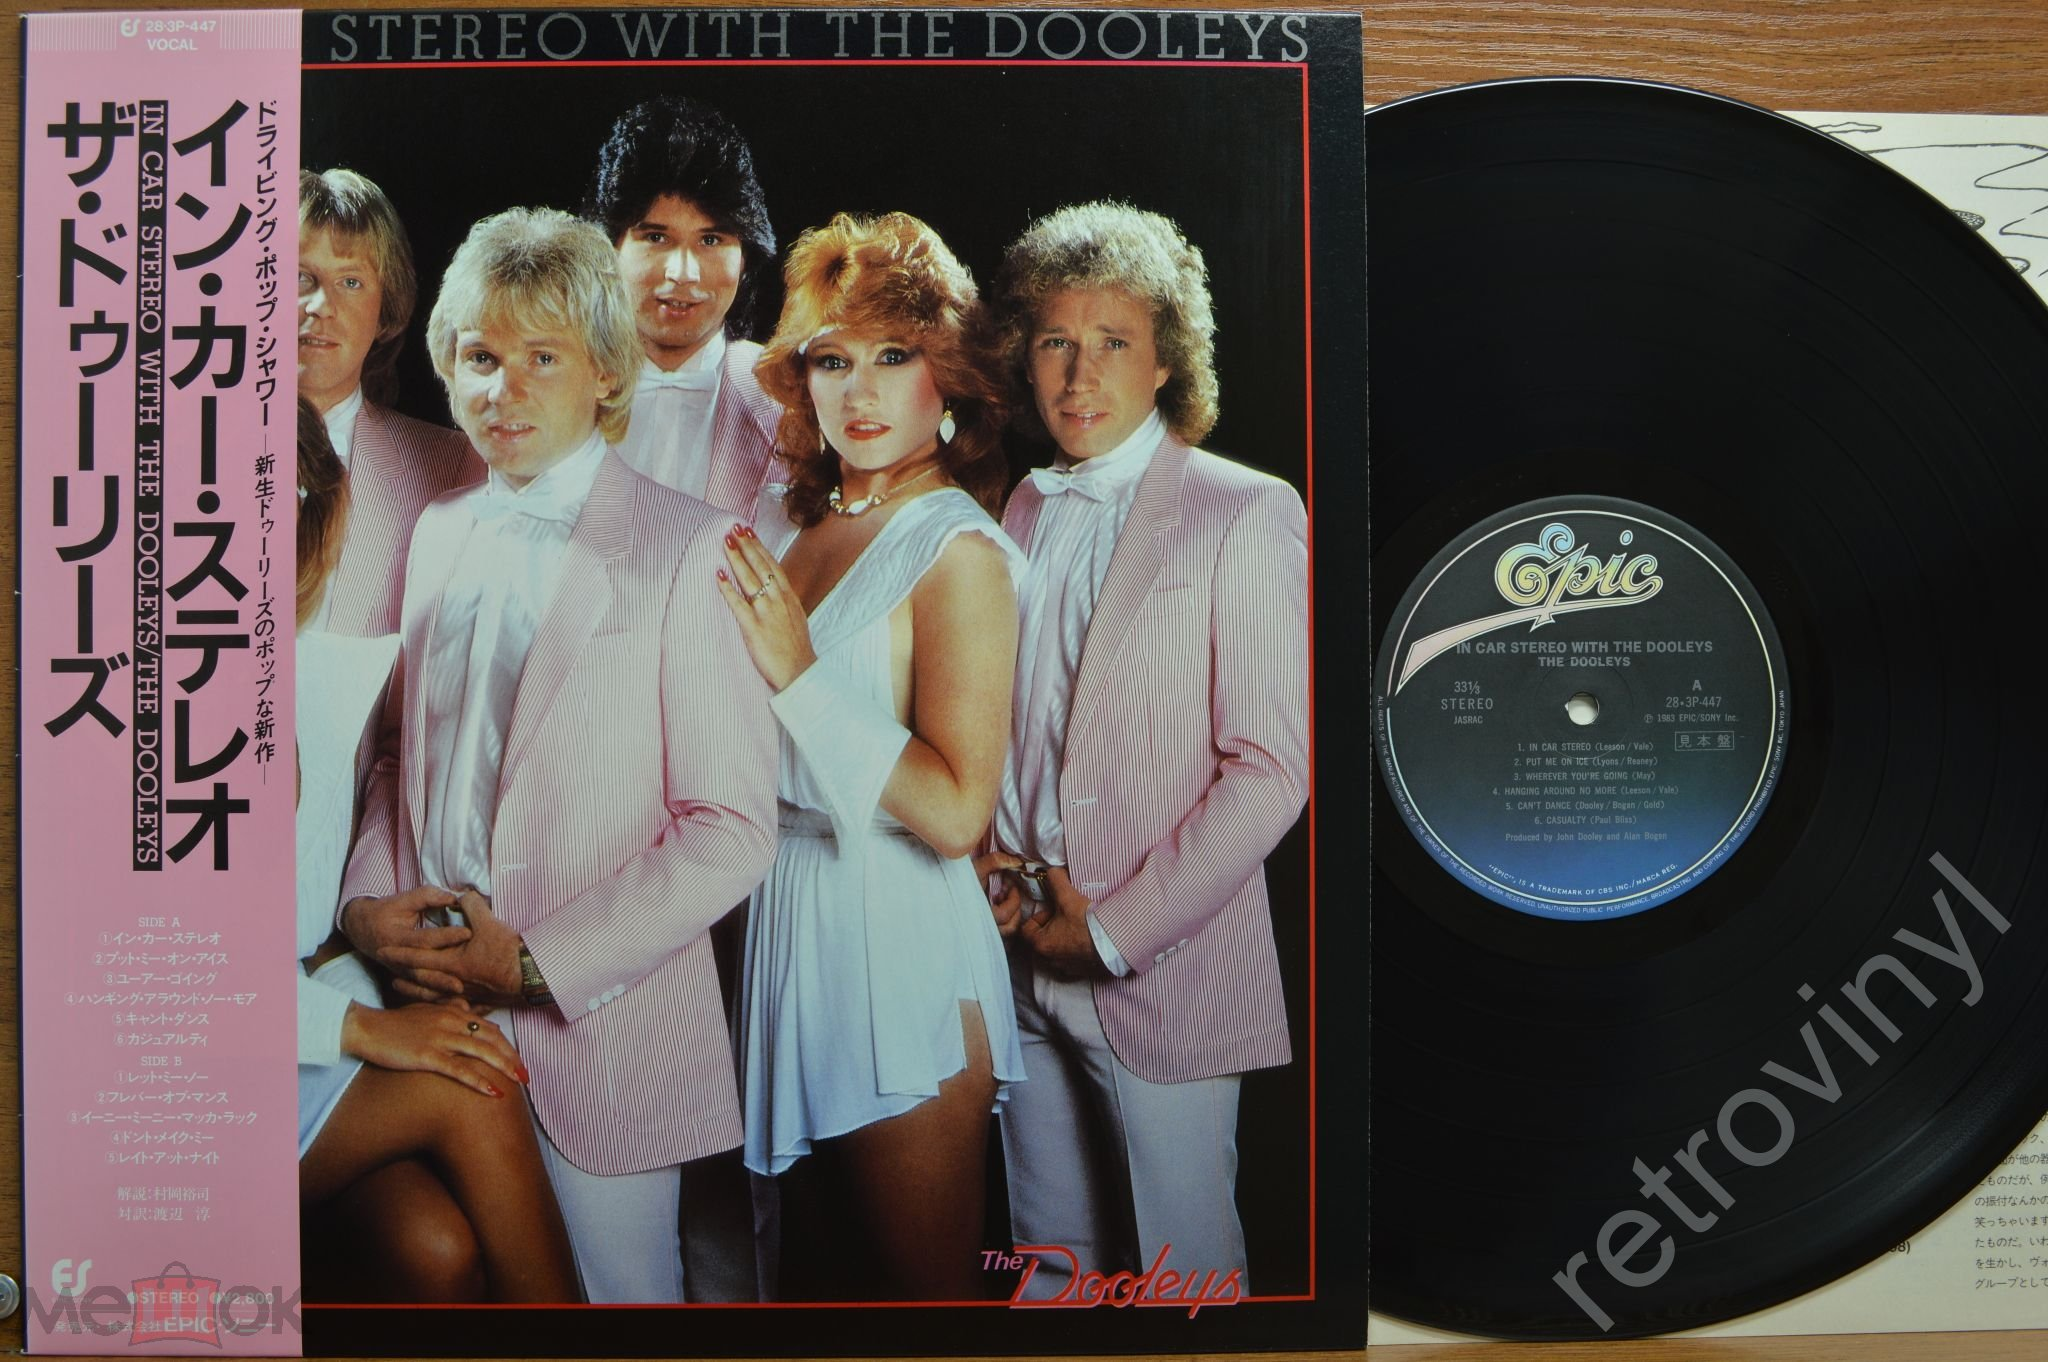 DOOLEYS, THE - In Car Stereo With The Dooleys - 28•3P-447 Epic/Sony =PROMO= ORIGINAL 1983 JAPAN MINT